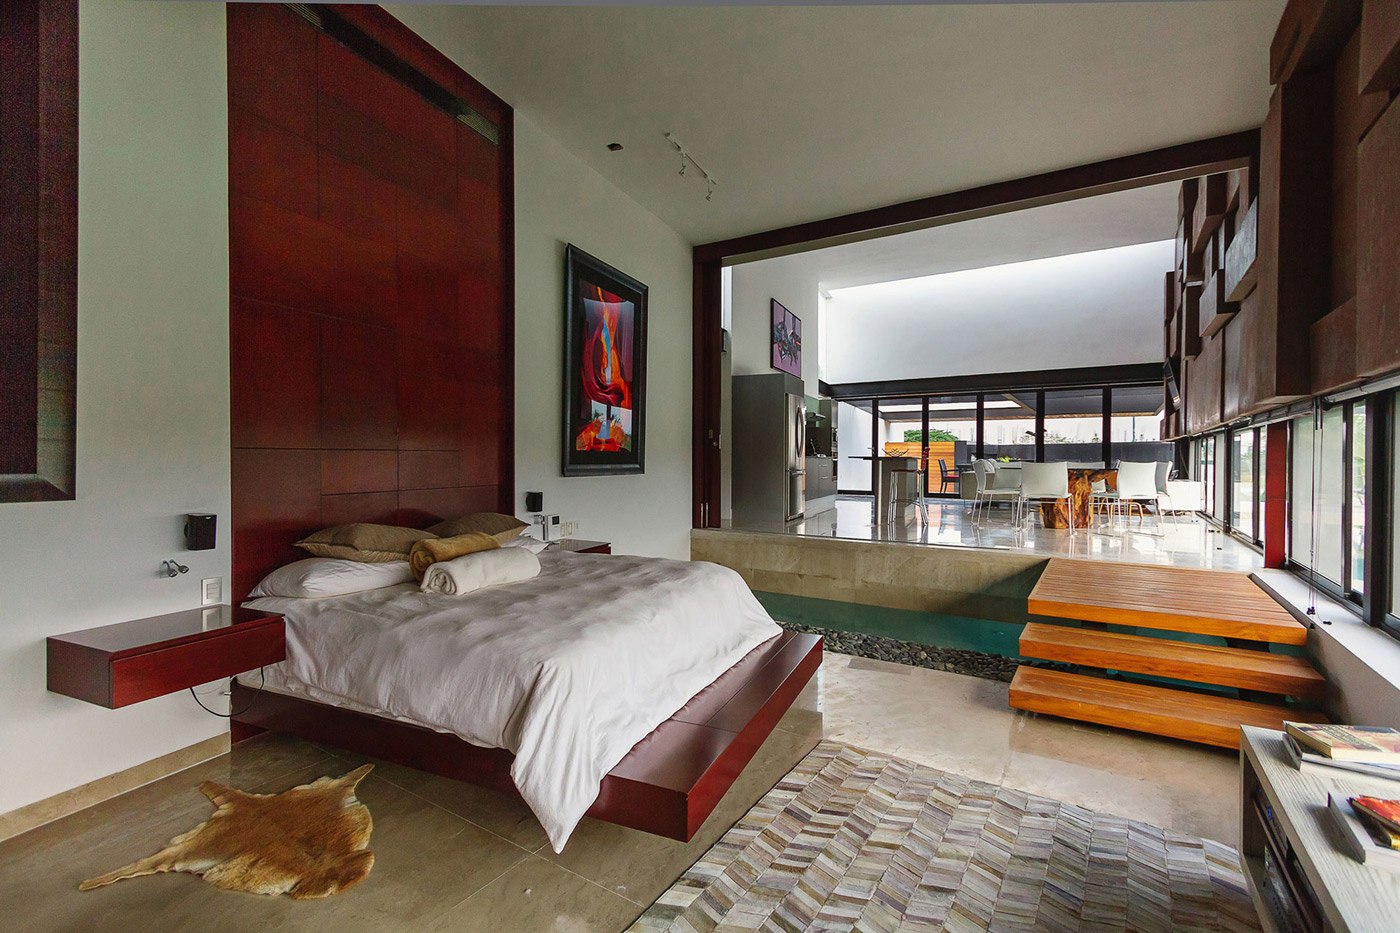 Bedroom, Sliding Door, Living Space, Contemporary Residence in Merida, Yucatan